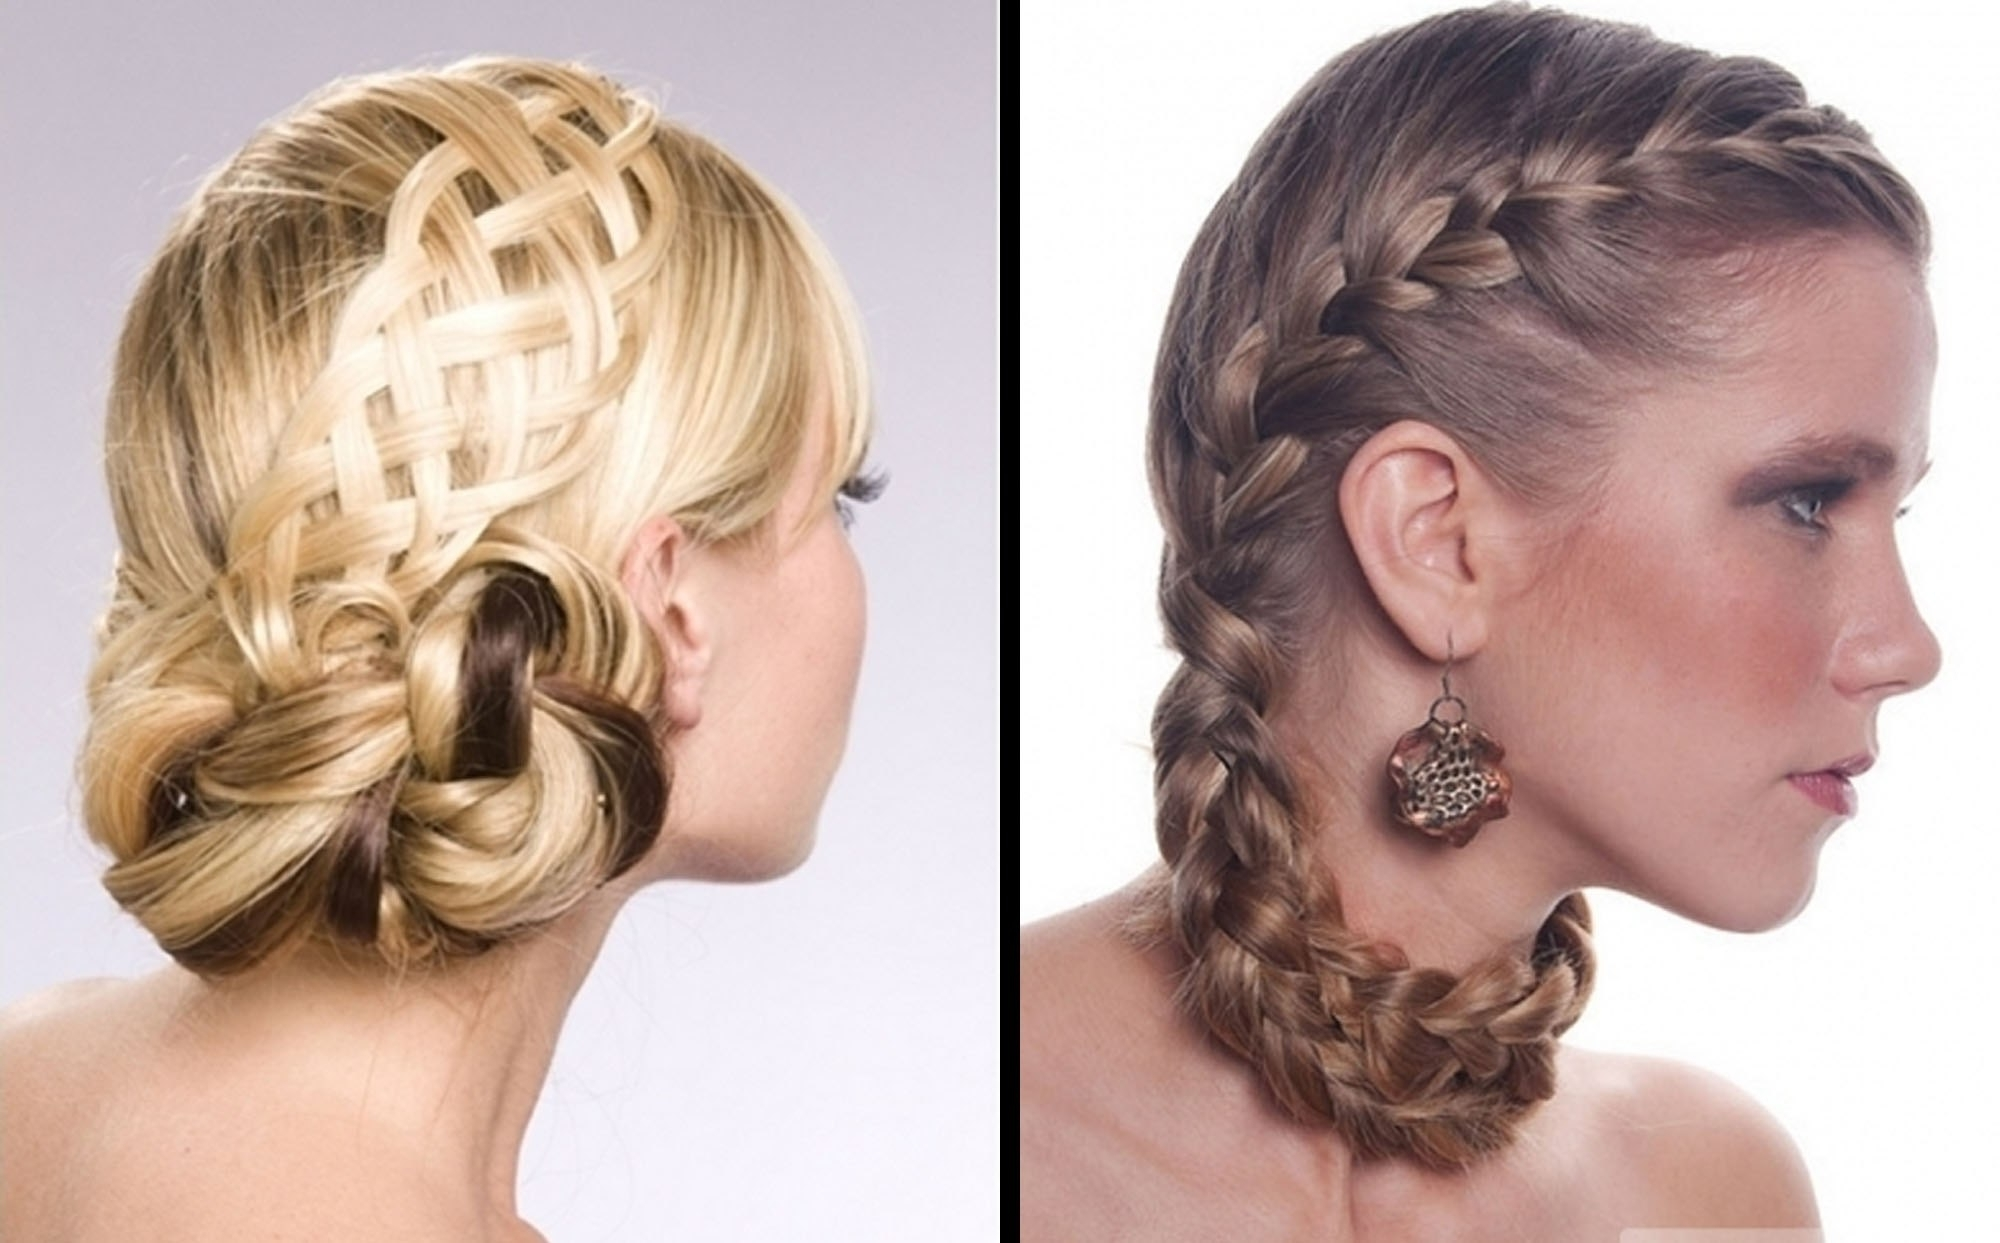 Hairstyles Prom For Short Hair Easy | Medium Hair Styles Ideas – 35491 In Simple Hair Updo Hairstyles (View 13 of 15)